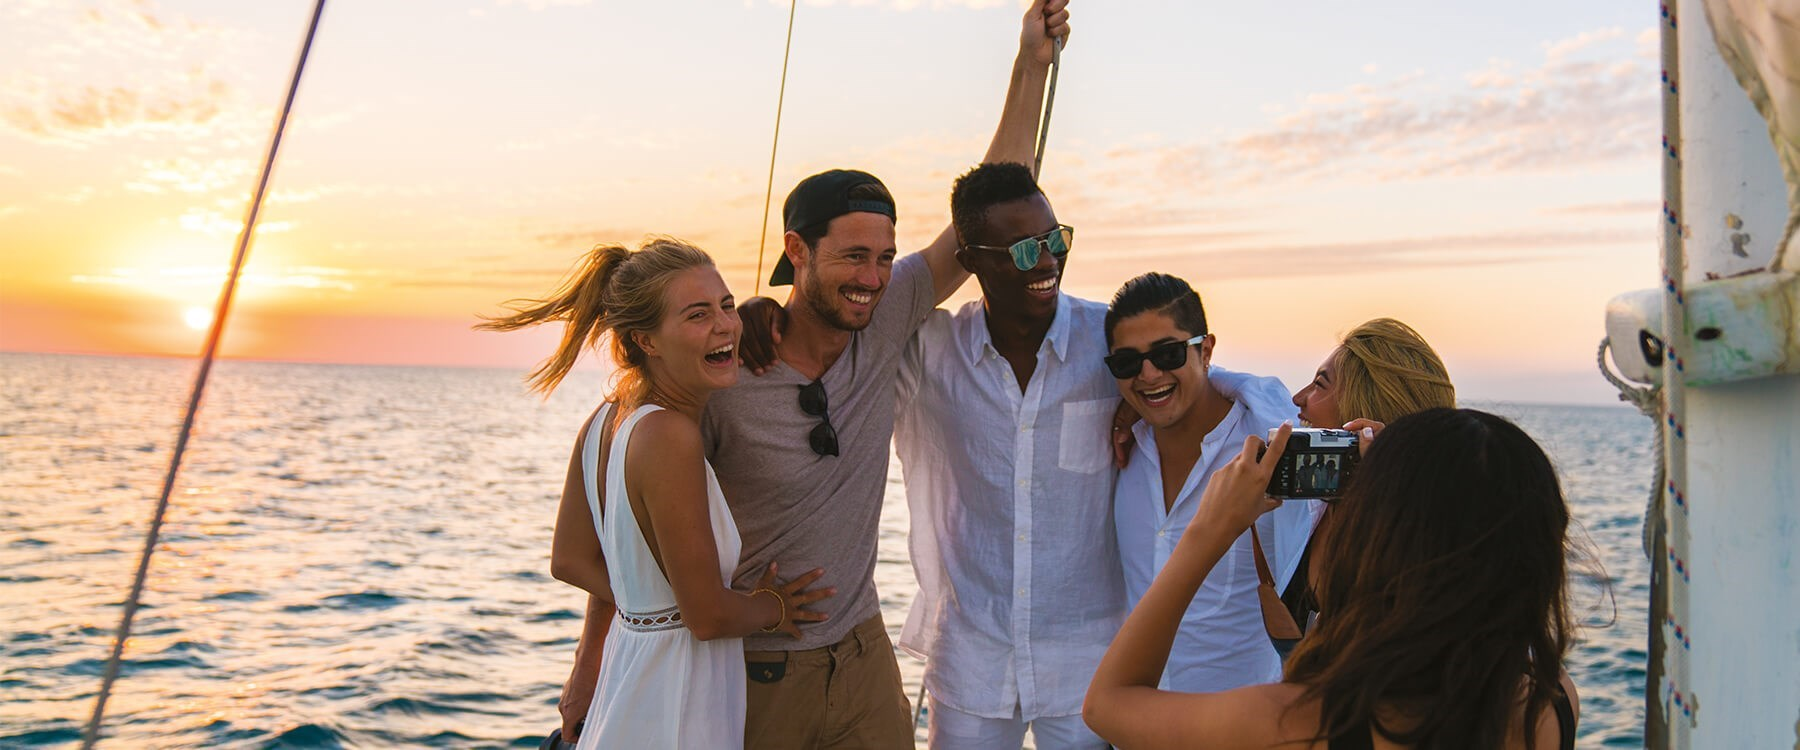 Group of young travellers on a yacht.